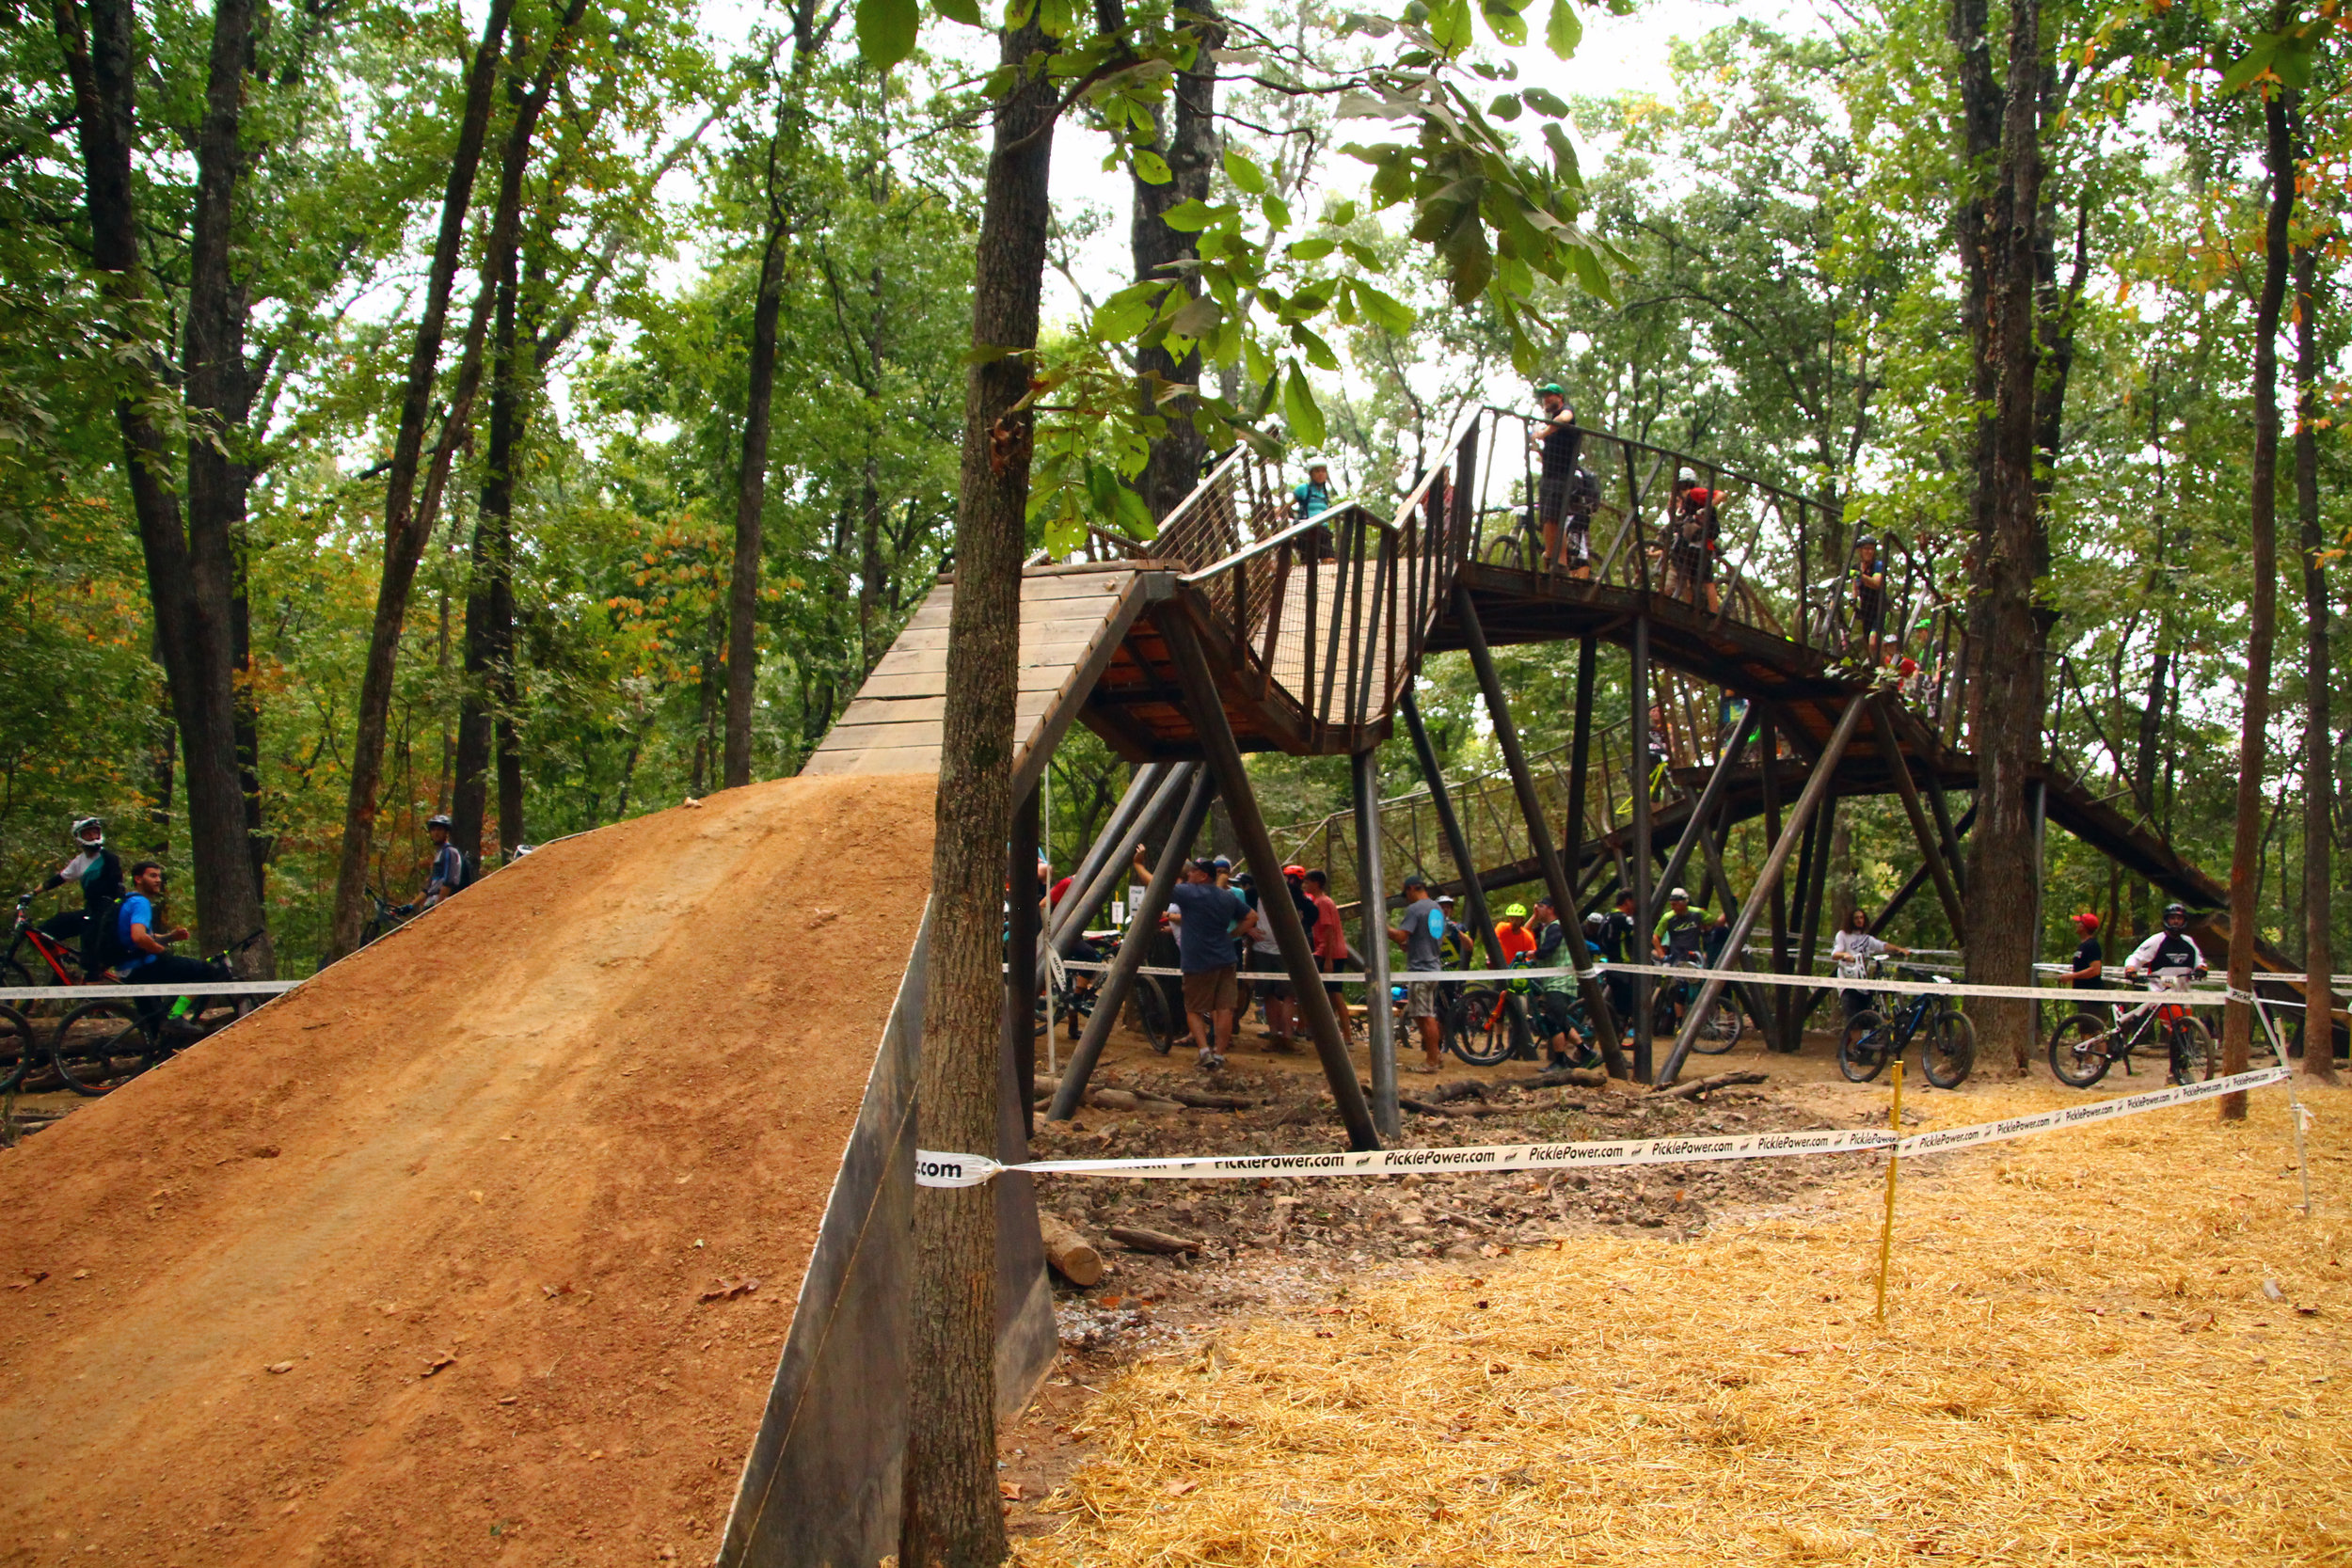 NOT FOR THE FAINT OF HEART AT COLER: Waiting to take off at the Peak One Hub, both built by Progressive Trail Design.